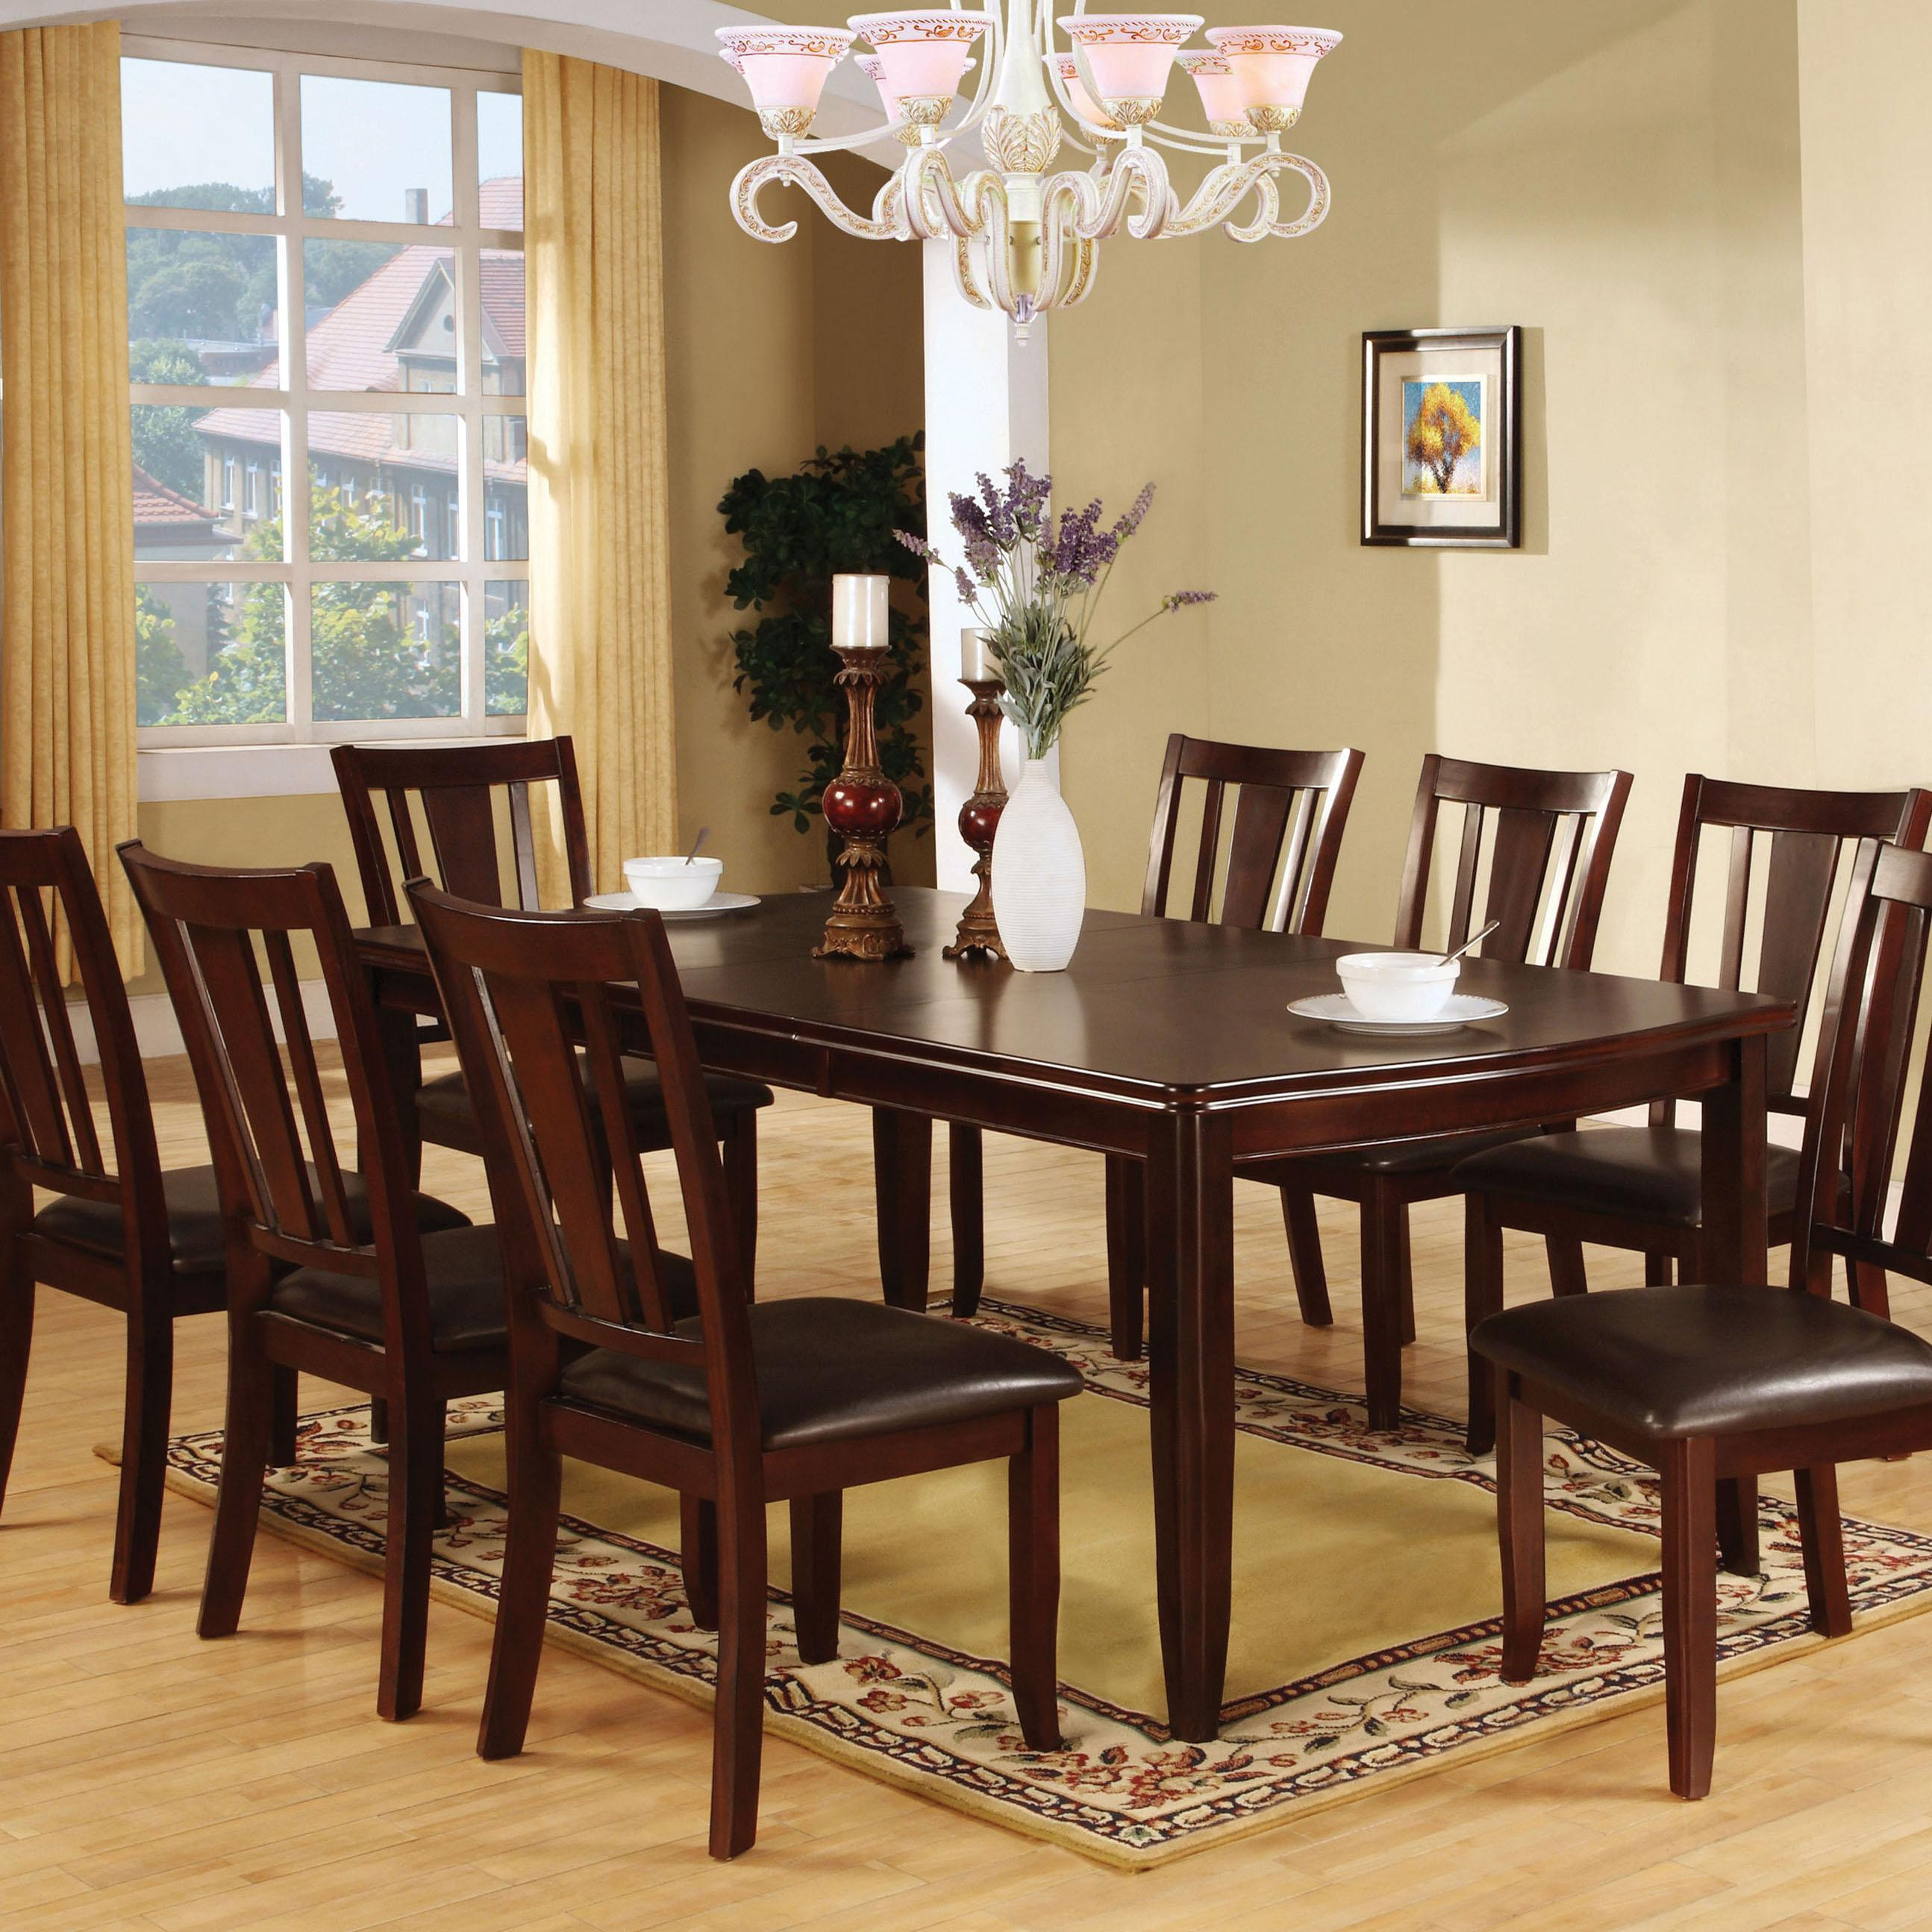 dining room table set. View Larger Amazon Com  Furniture Of America Frederick 9 Piece Dining Table Set